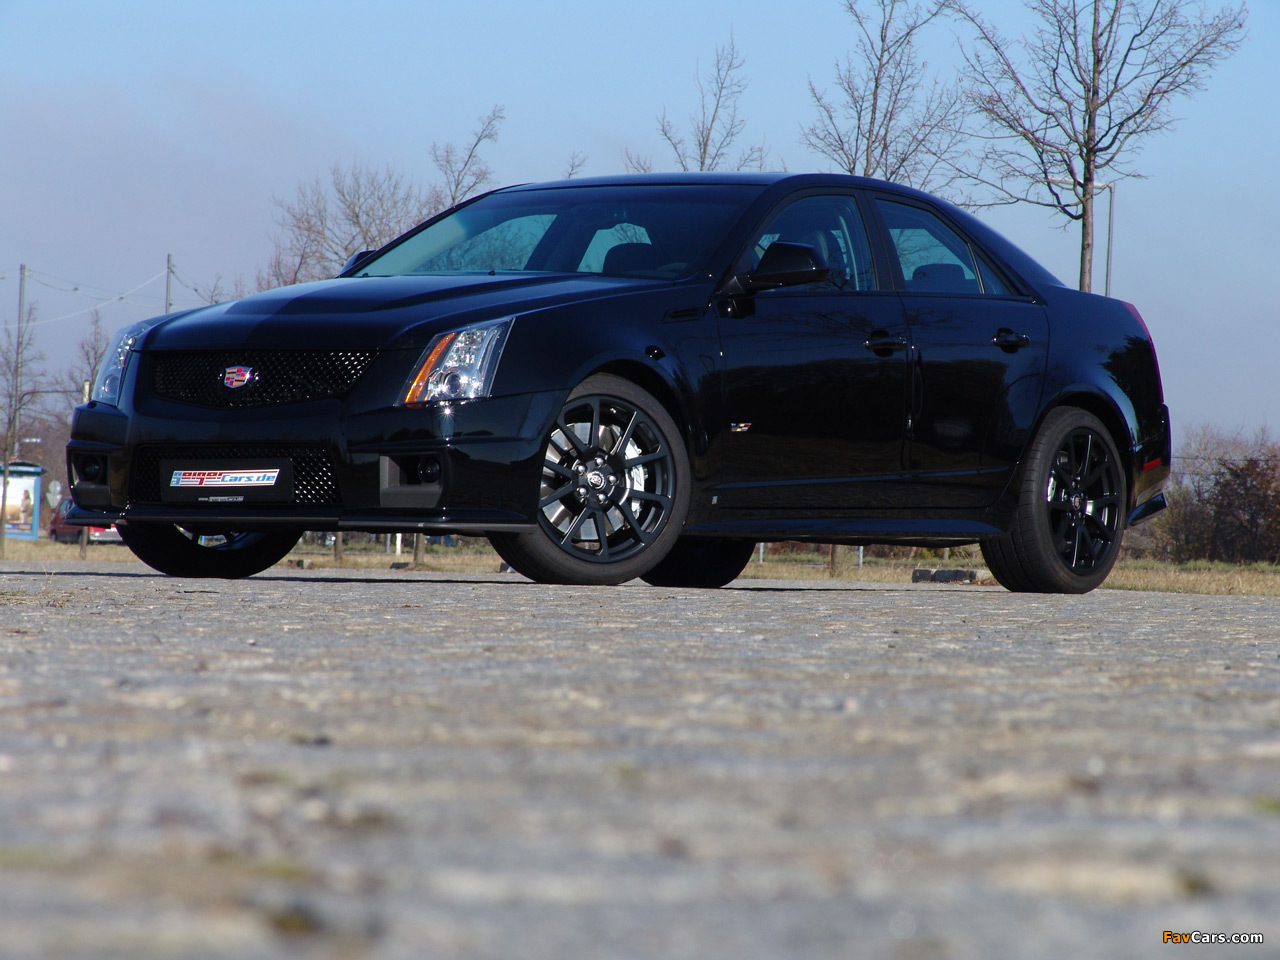 Geiger Cadillac CTS-V Brute Force 2009 photos (1280 x 960)